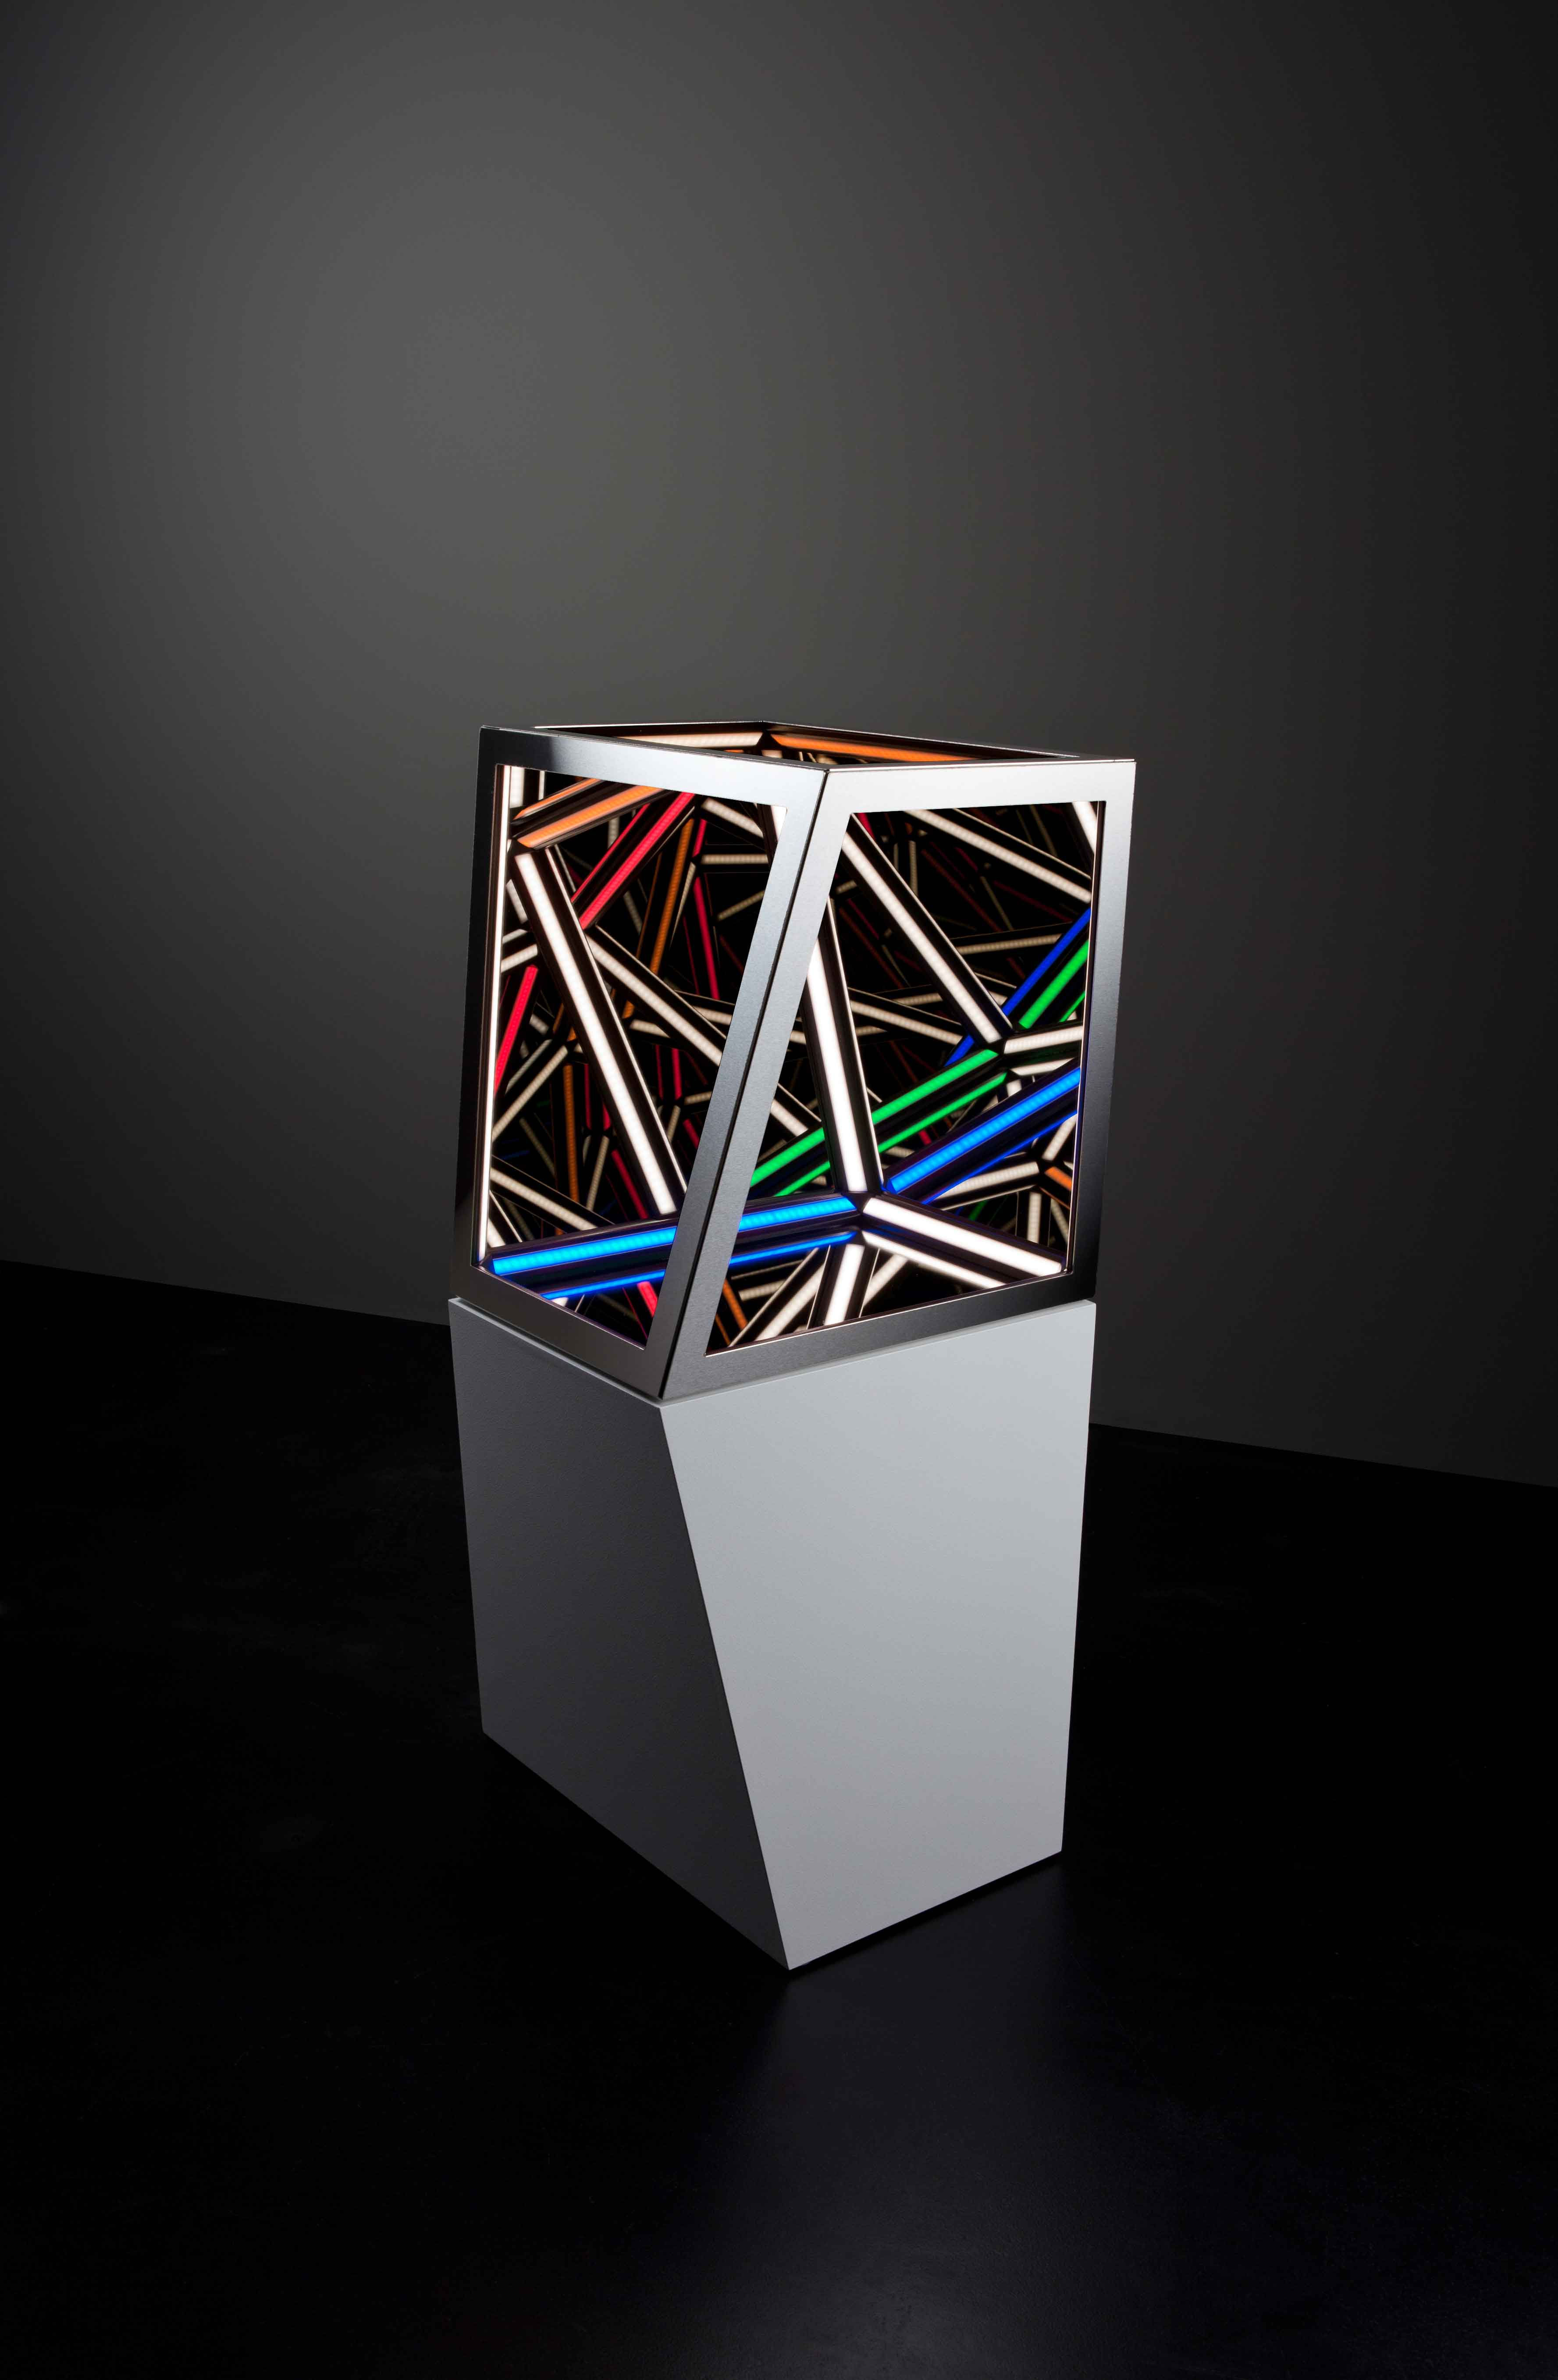 Dual IV, 2016<br>wood, reflective glass, mirror, stainless steel, MDF and LED lighting, 93 x 45 x 45 cm